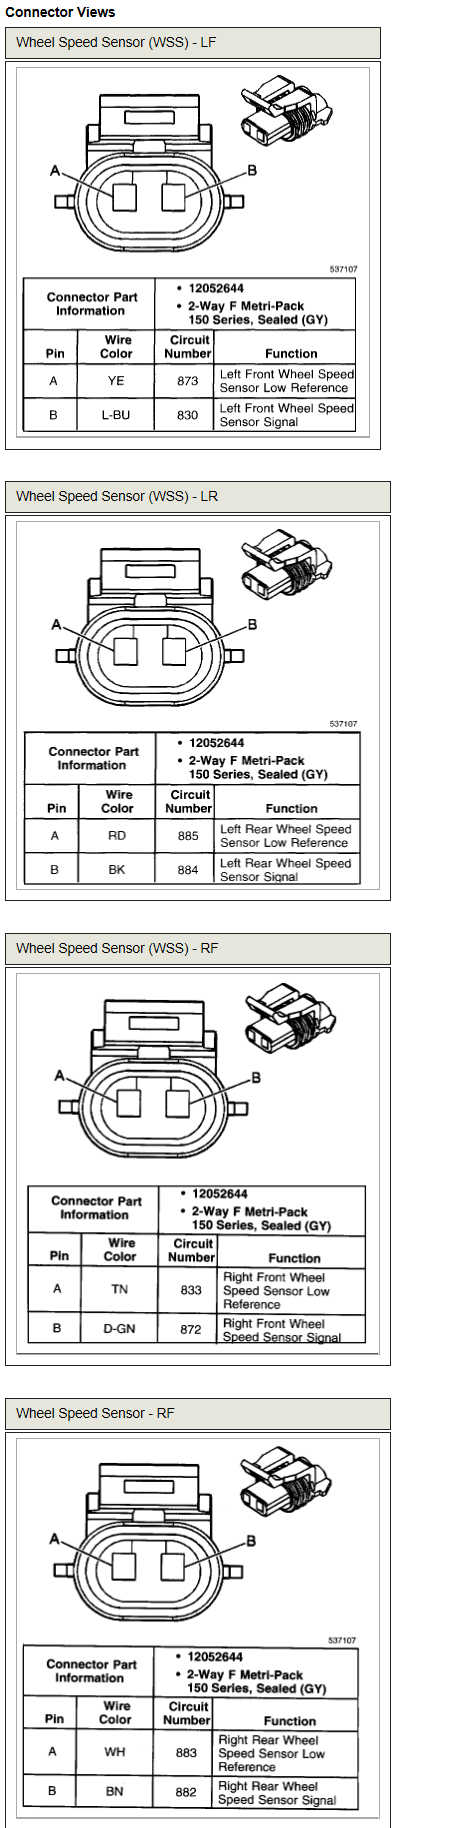 Grand Prix Abs Wiring Diagram | Wiring Schematic Diagram - 5 ... on 1996 dodge caravan wiring harness, 2002 dodge grand caravan wiring harness, 2003 kia sorento wiring harness, 2003 pontiac aztek wiring harness, 2003 ford explorer wiring harness, 2003 pontiac bonneville wiring harness, 2003 pontiac grand am wiring harness, 2004 mazda 6 wiring harness, 2000 pontiac grand am wiring harness, 2008 pontiac grand prix wiring harness, 2007 pontiac grand prix wiring harness, 2001 pontiac grand am wiring harness, 2004 saturn vue wiring harness, 2002 jeep grand cherokee wiring harness, 2004 ford mustang wiring harness, 2004 chevrolet tahoe wiring harness, 2005 chrysler pacifica wiring harness, 2004 hyundai santa fe wiring harness, 1990 nissan 300zx wiring harness, 2002 ford focus wiring harness,